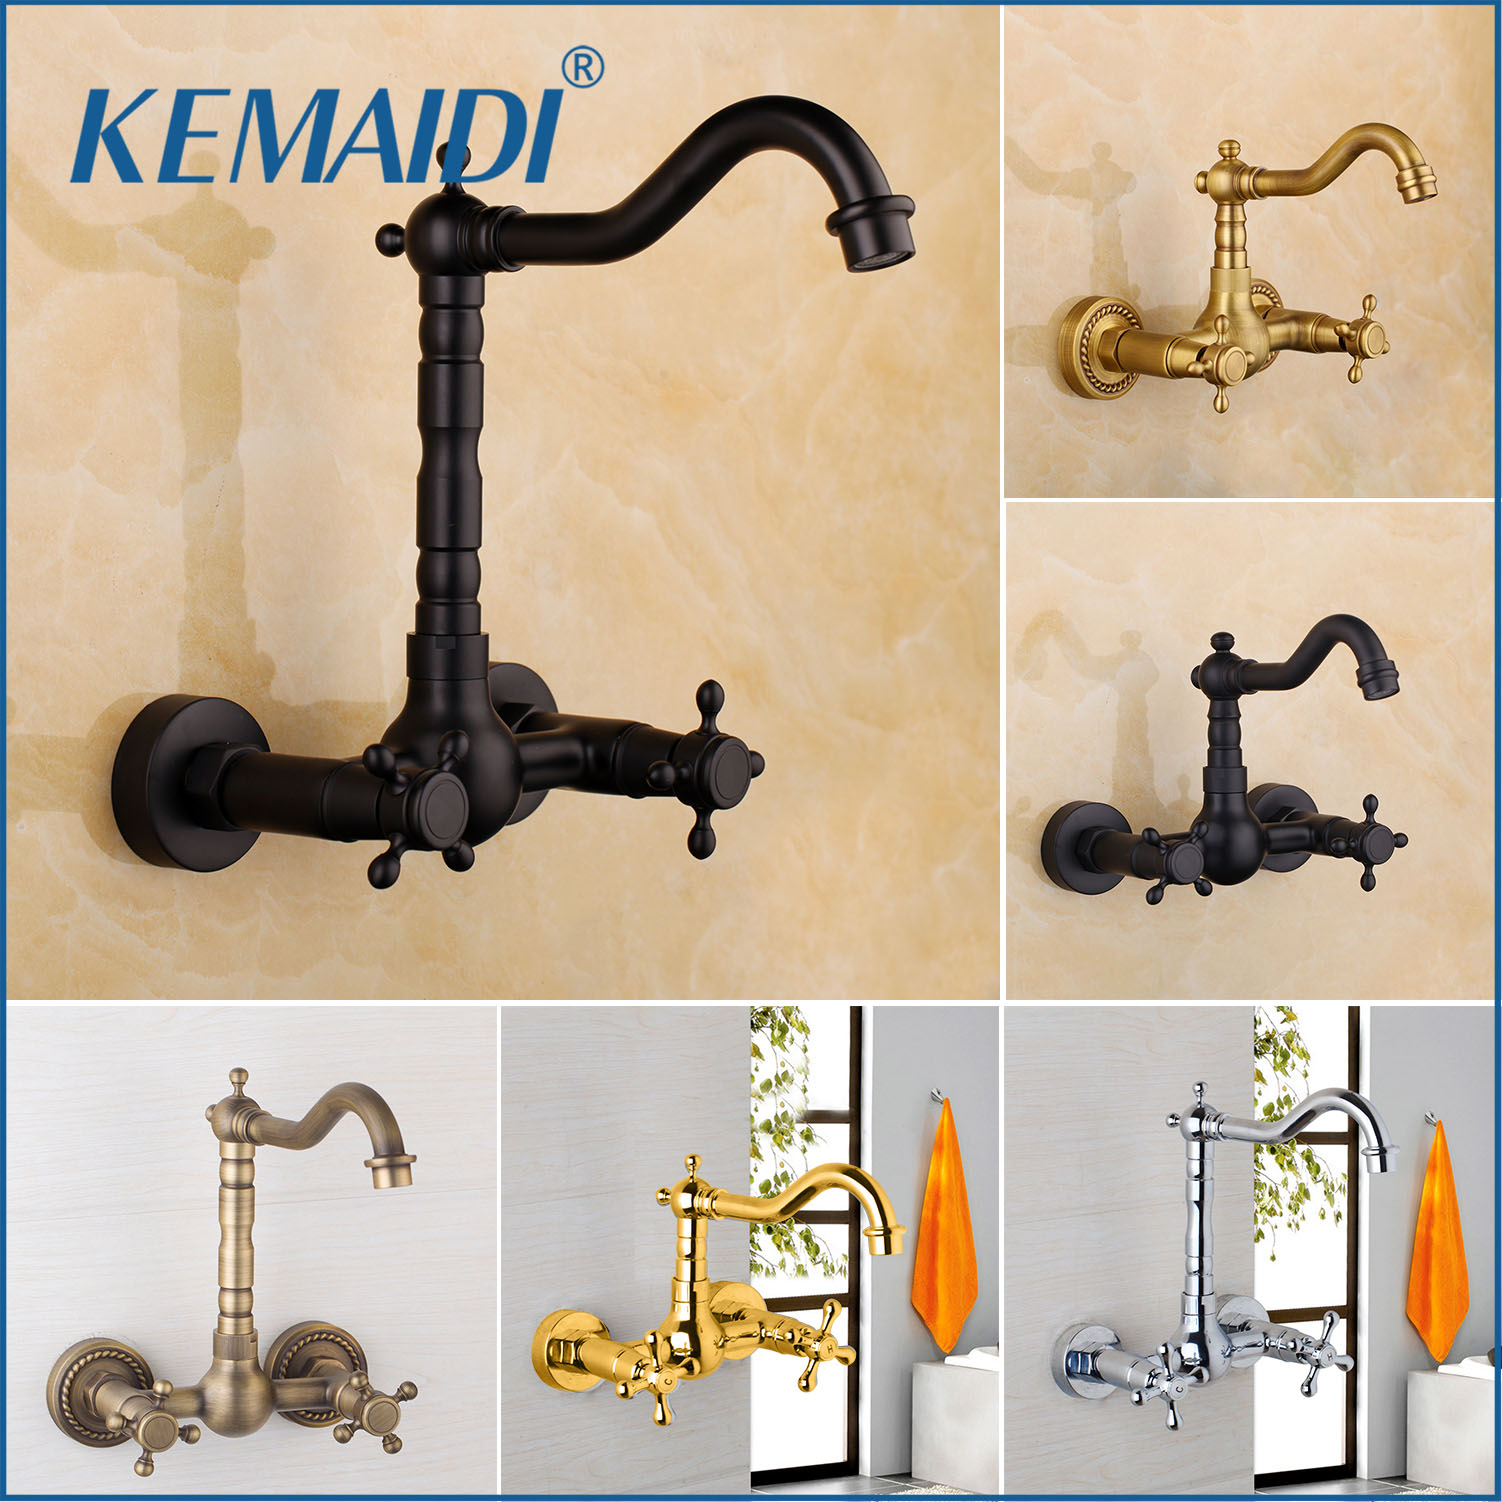 KEMAIDI 360 Swivel Antique Brass Bathroom Basin Sink Mix Tap Dual Handles Wall Mounted Kitchen Basin